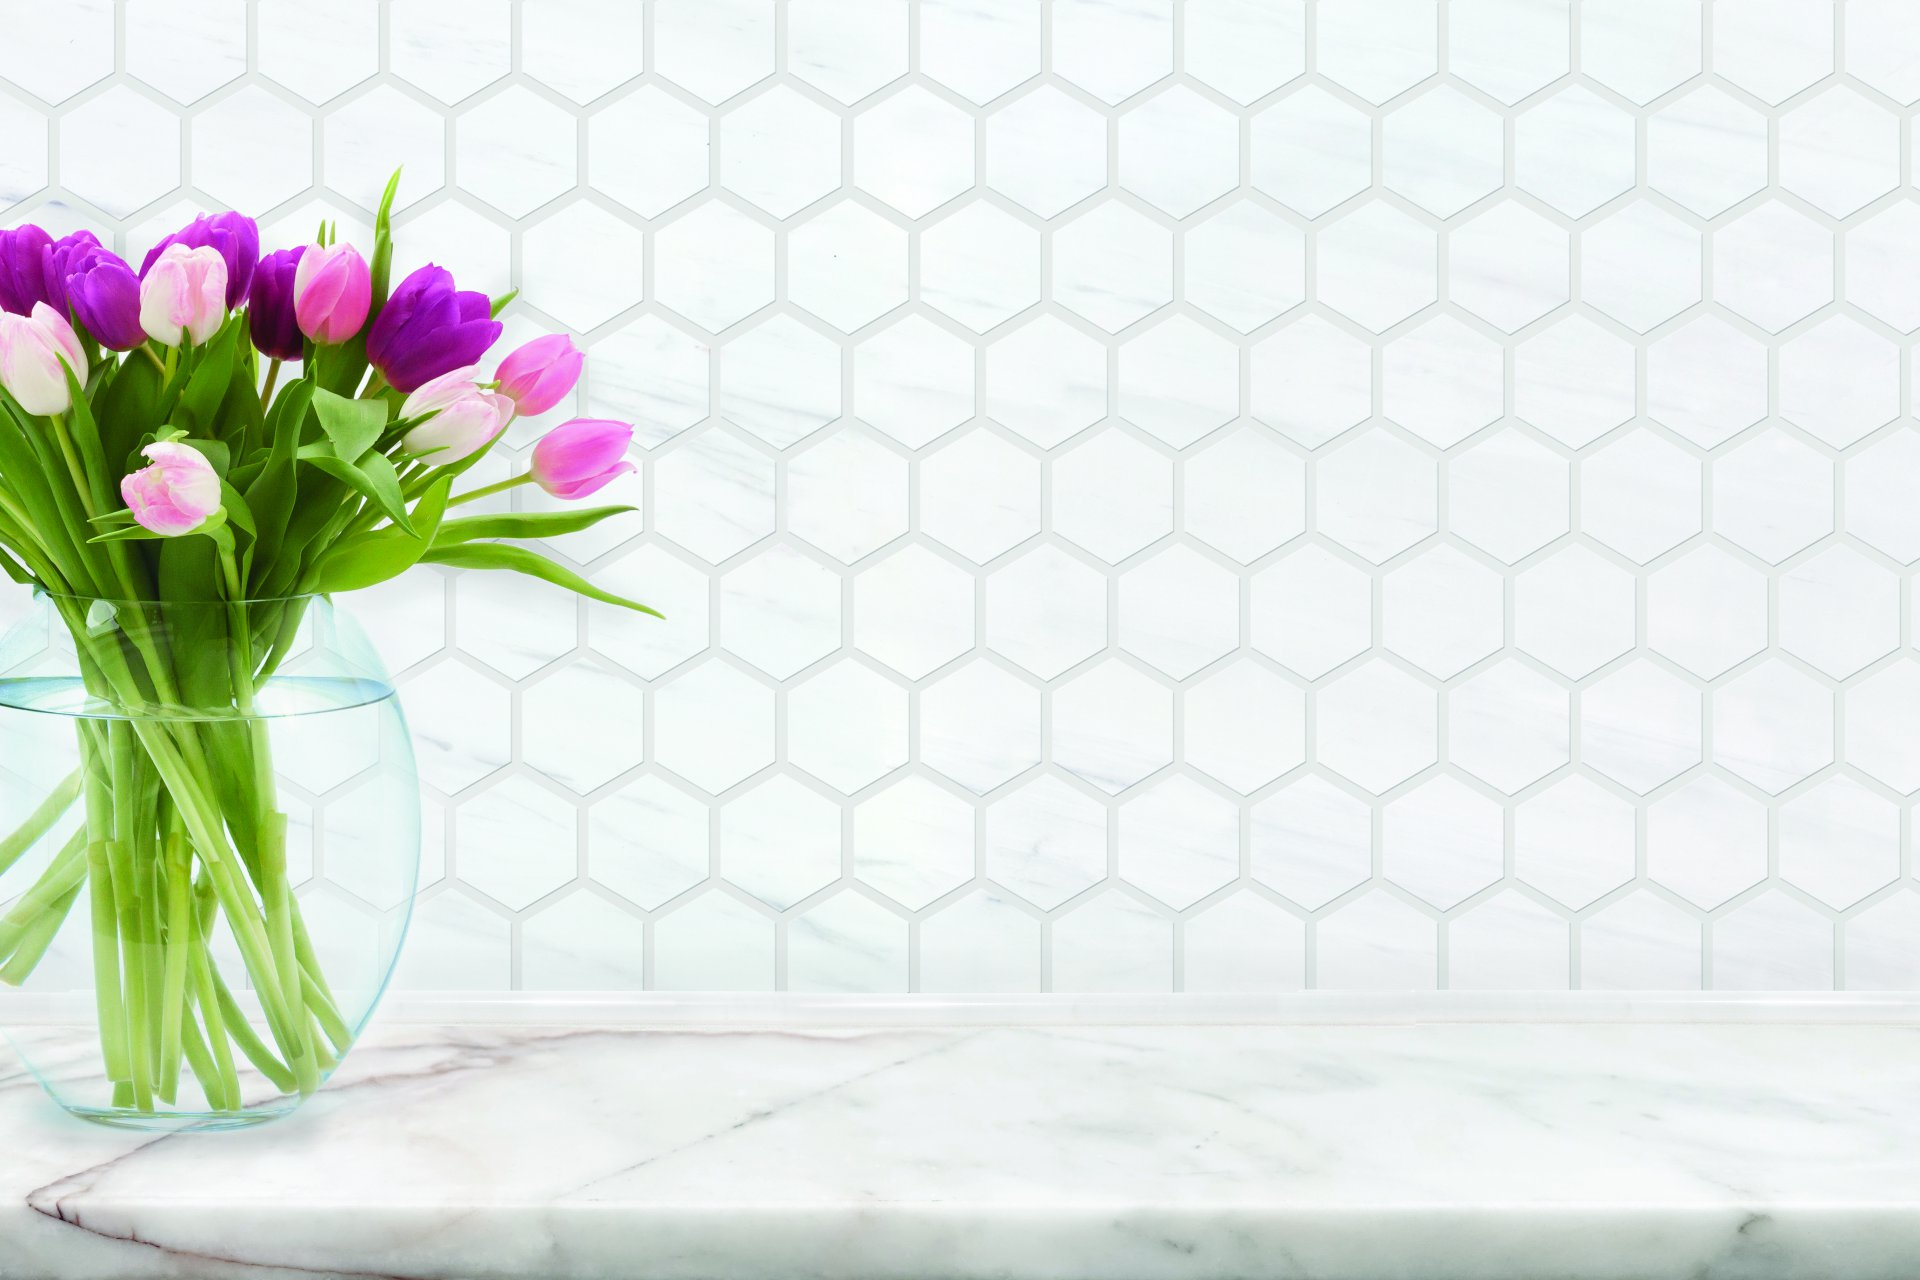 2x2 Hexagon Dolomite Select Marble Honed Mosaic